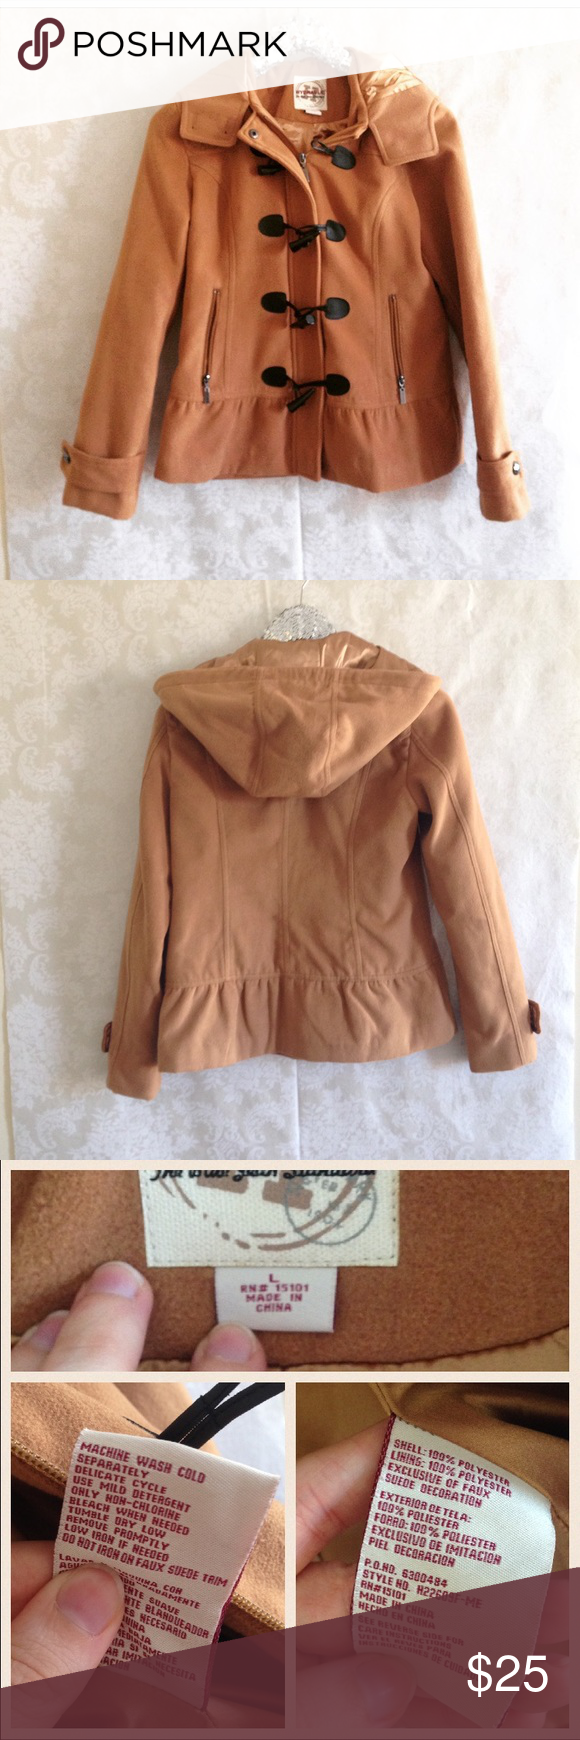 """Peplum Coat Cigar or Cognac Colored Peplum Coat. So cute and warm. Hood. Hidden Zip with toggle closure.  🛍Before you buy, I want you to know:  * CONDITION:EUC. Minimal wear.  * MEASUREMENTS: (all are approximate.) Arm Length: 24"""" Pit to Pit: 19"""" Length:25"""" 💖 Please ask any questions. I want you to love it!  💰15% off 2+ bundles ♥️ Pet & Smoke Free Home  📬 Usually ships in 1 business day 1016AHI306 Hydraulic Jackets & Coats Pea Coats"""